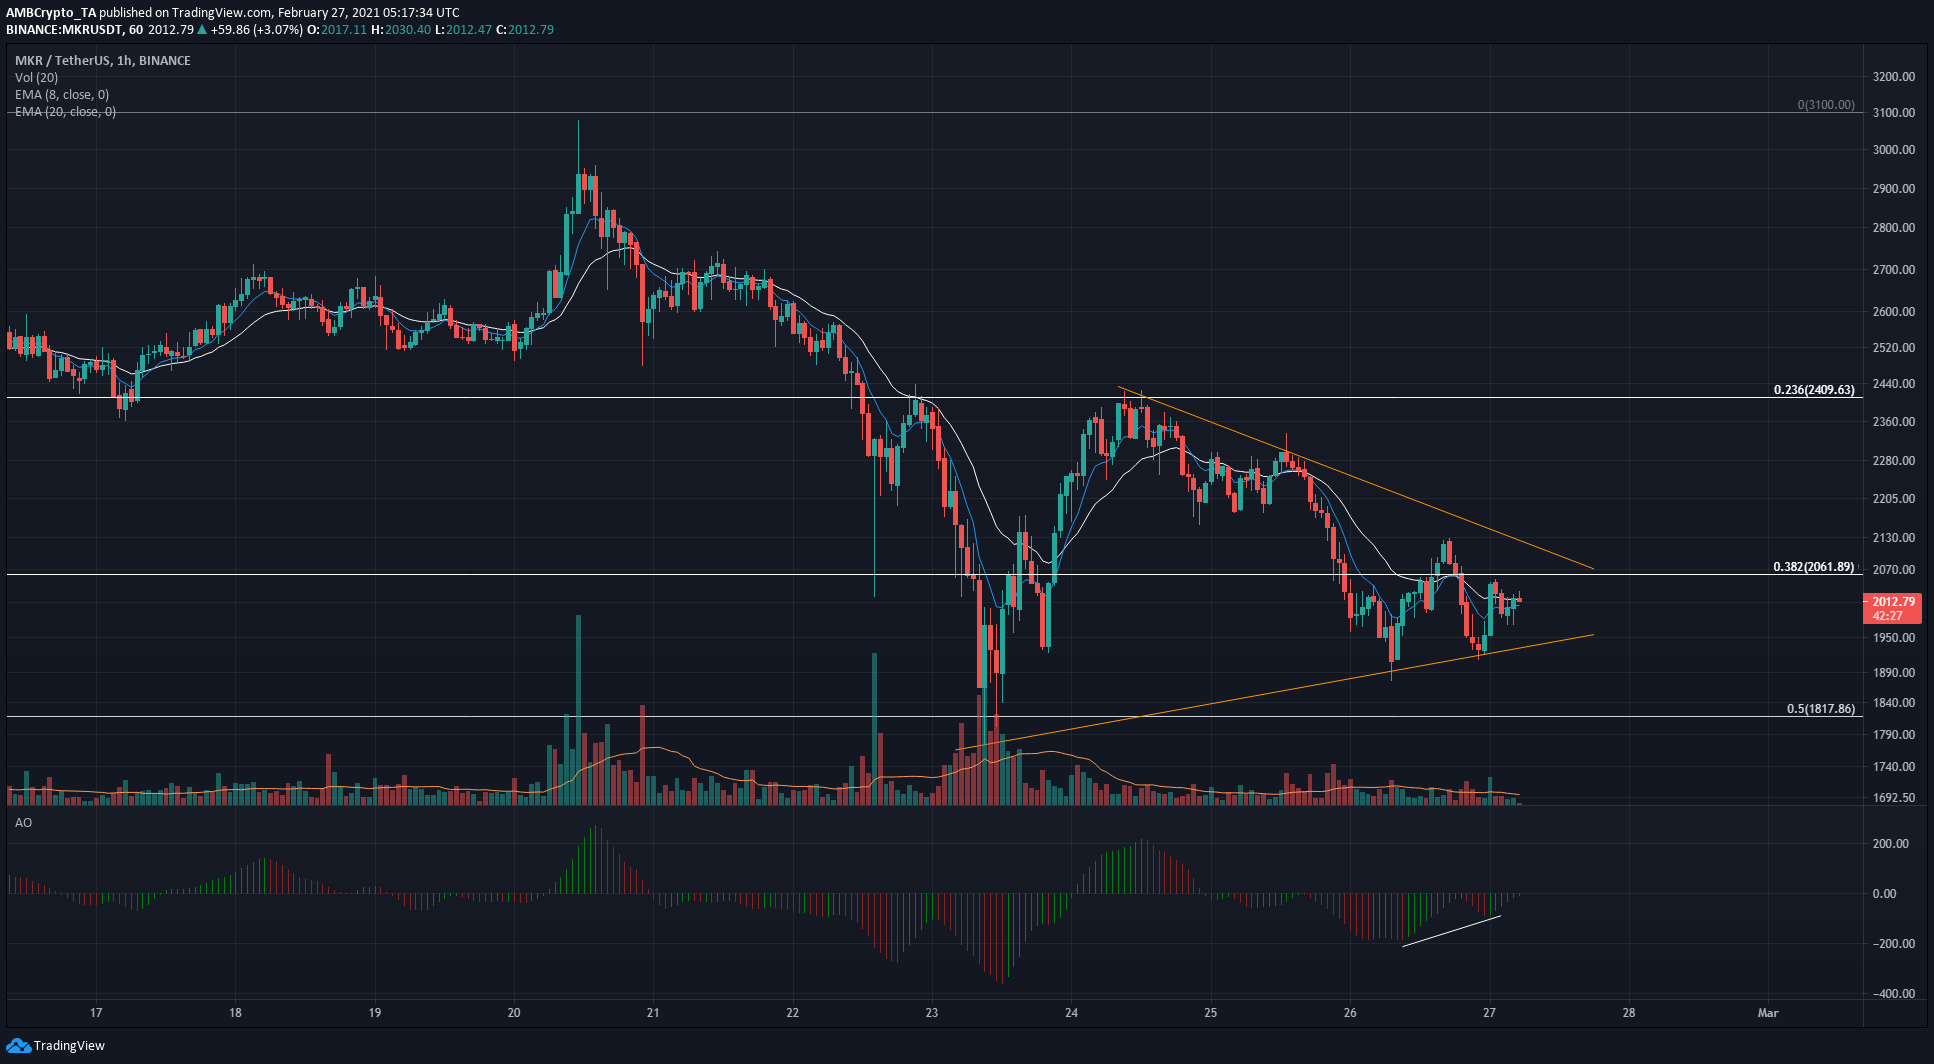 Bitcoin SV, BAT, Maker Price Analysis: 27 February